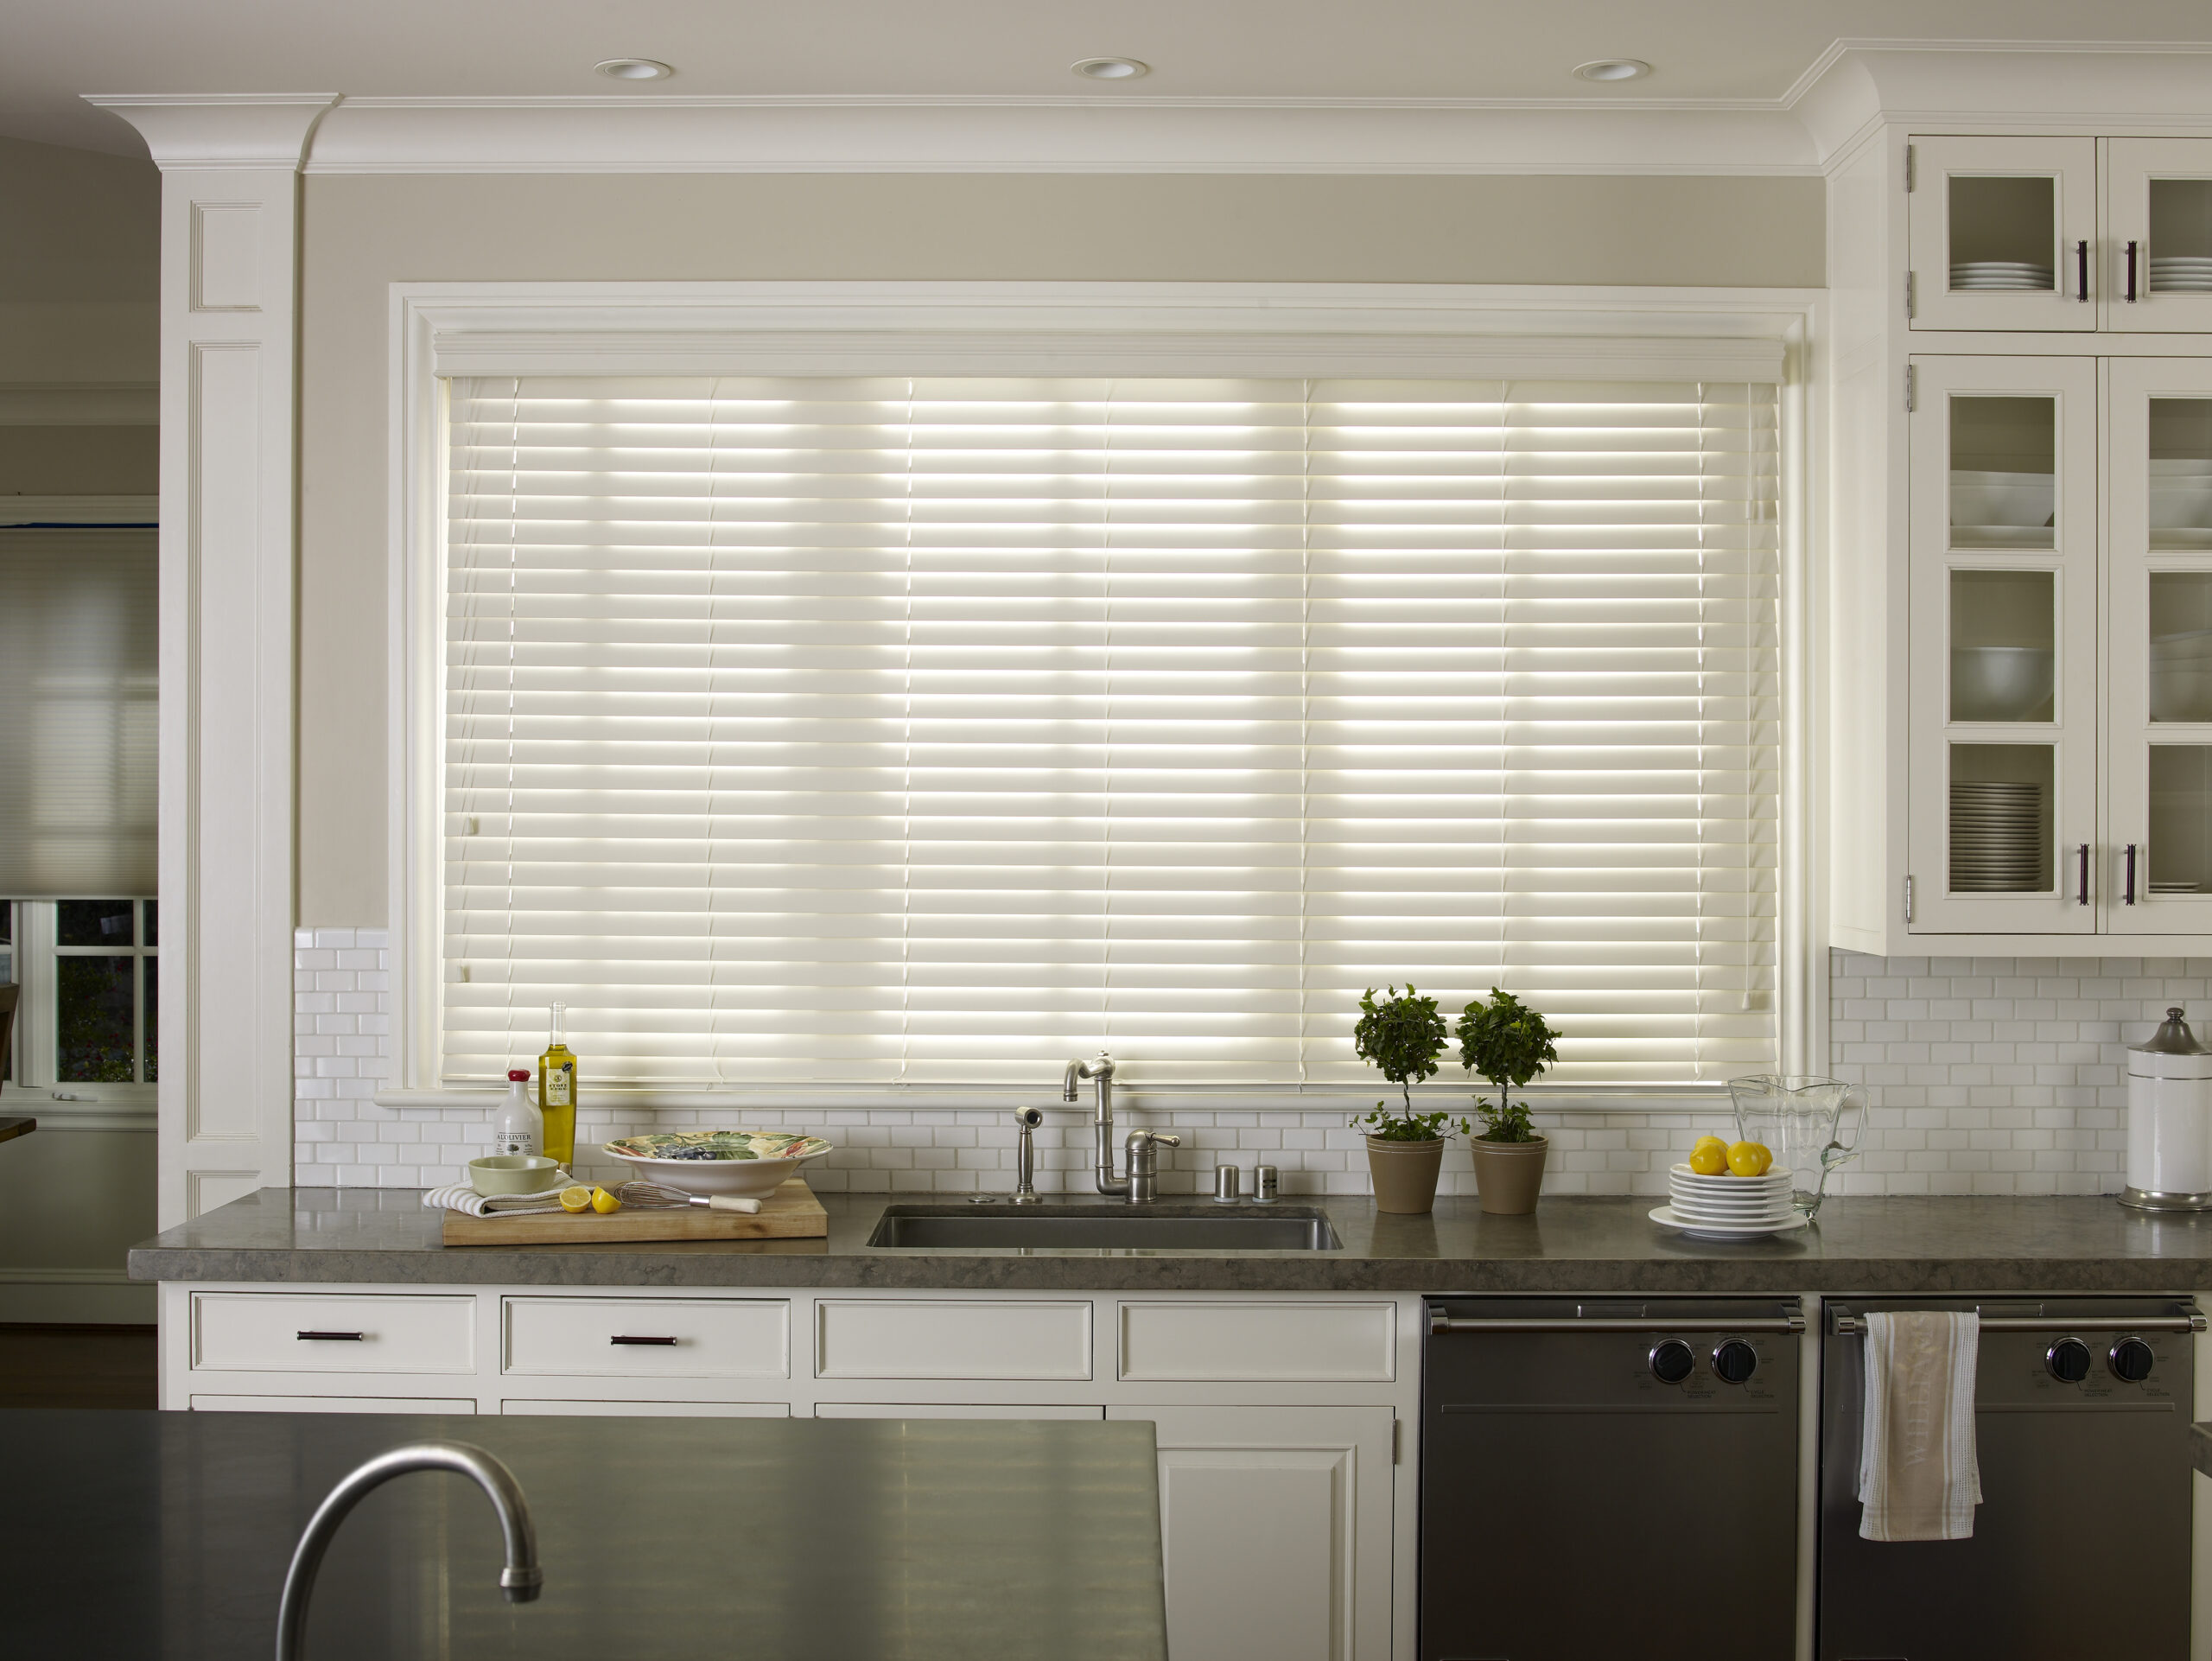 Shadesfor99 – Simple, Affordable Window Treatment Solutions